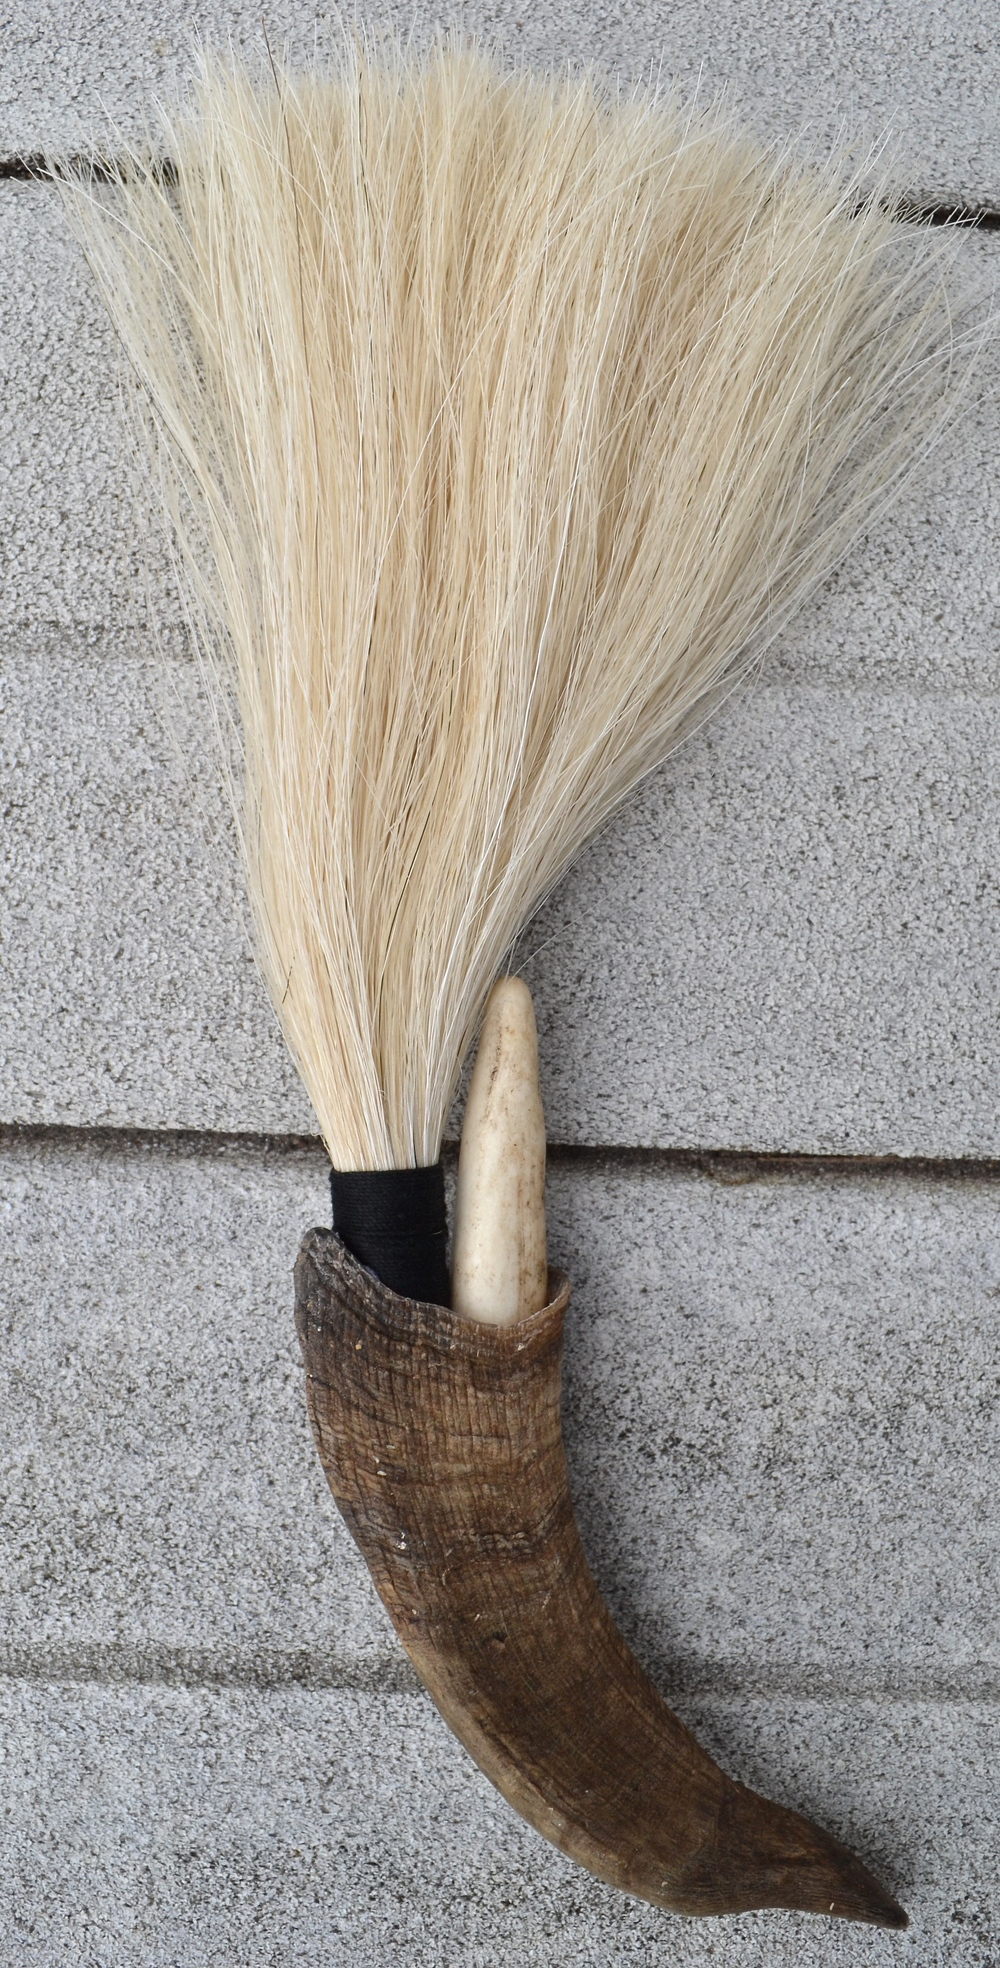 Goat horn, horse hair, twine, and anger tip  Artist made primal brush for use or display